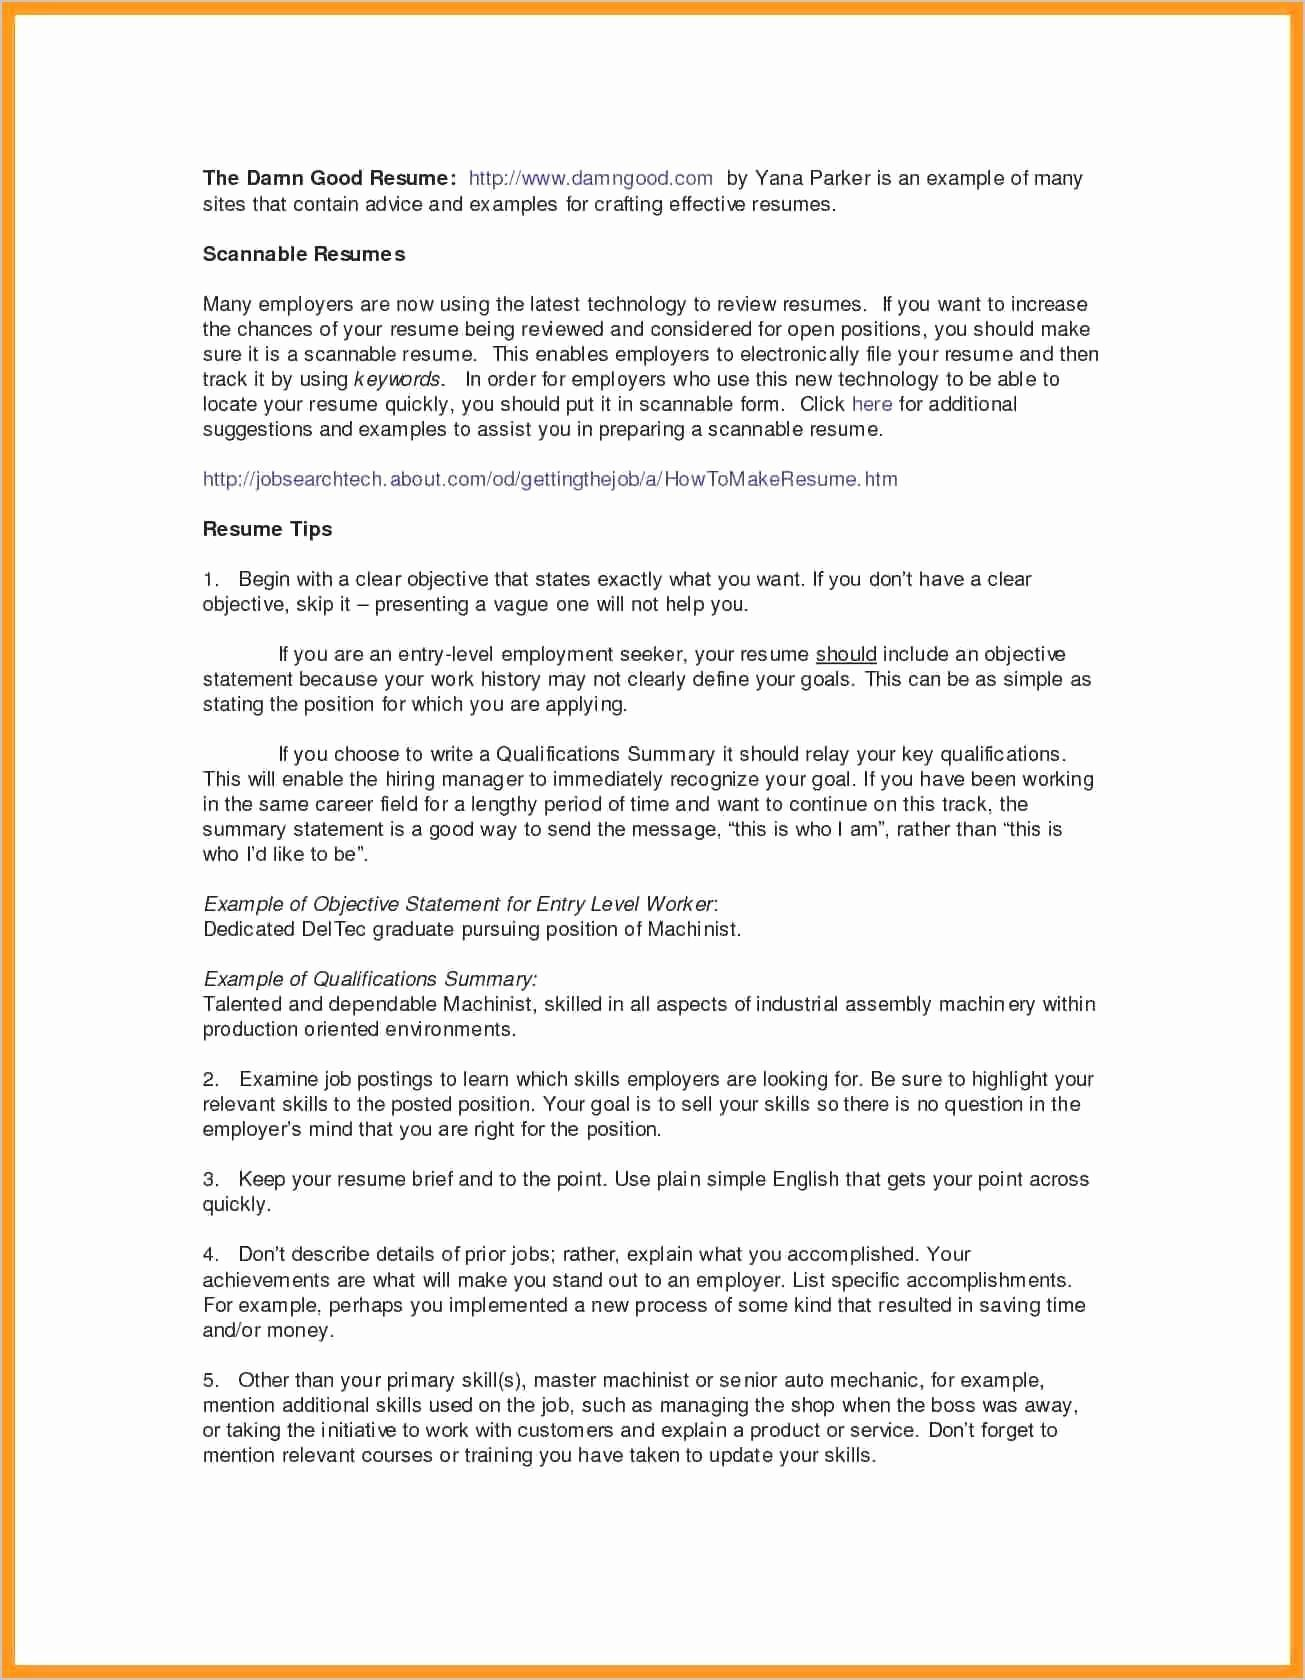 Substitute Teacher Job Description for Resume - Substitute Teacher Resume Objective